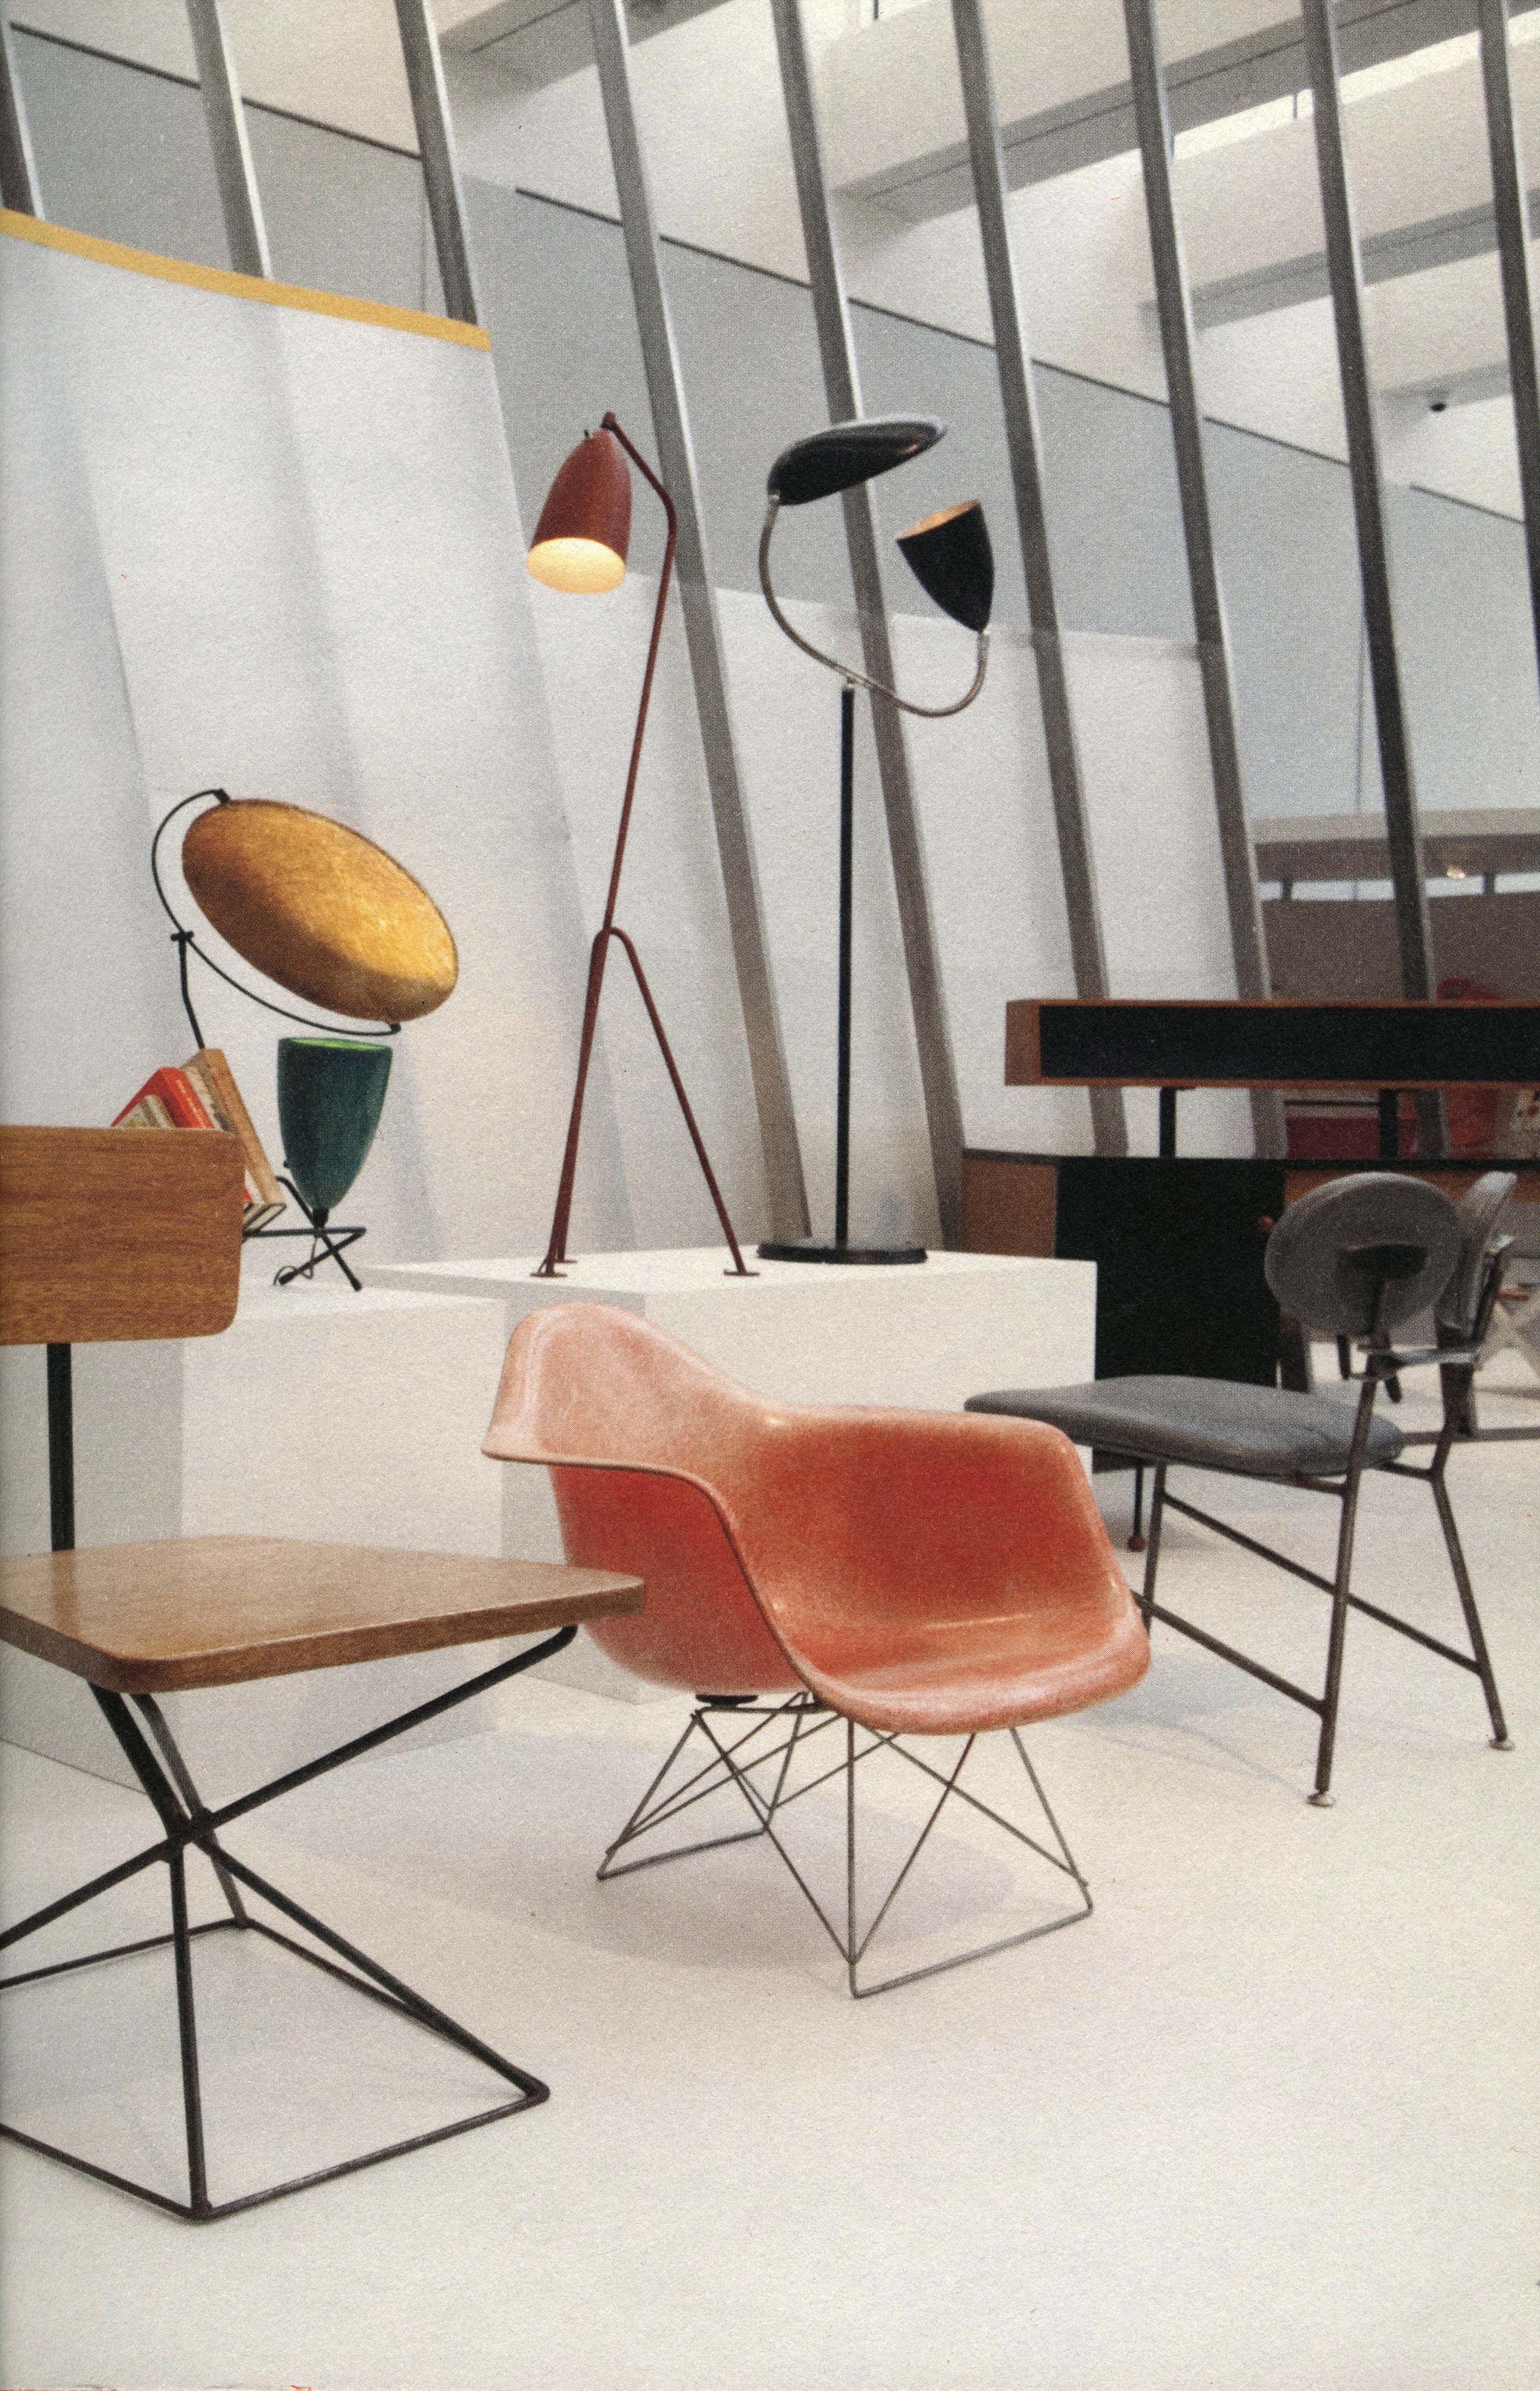 Eames fiberglass chair, the model known as LAR, on